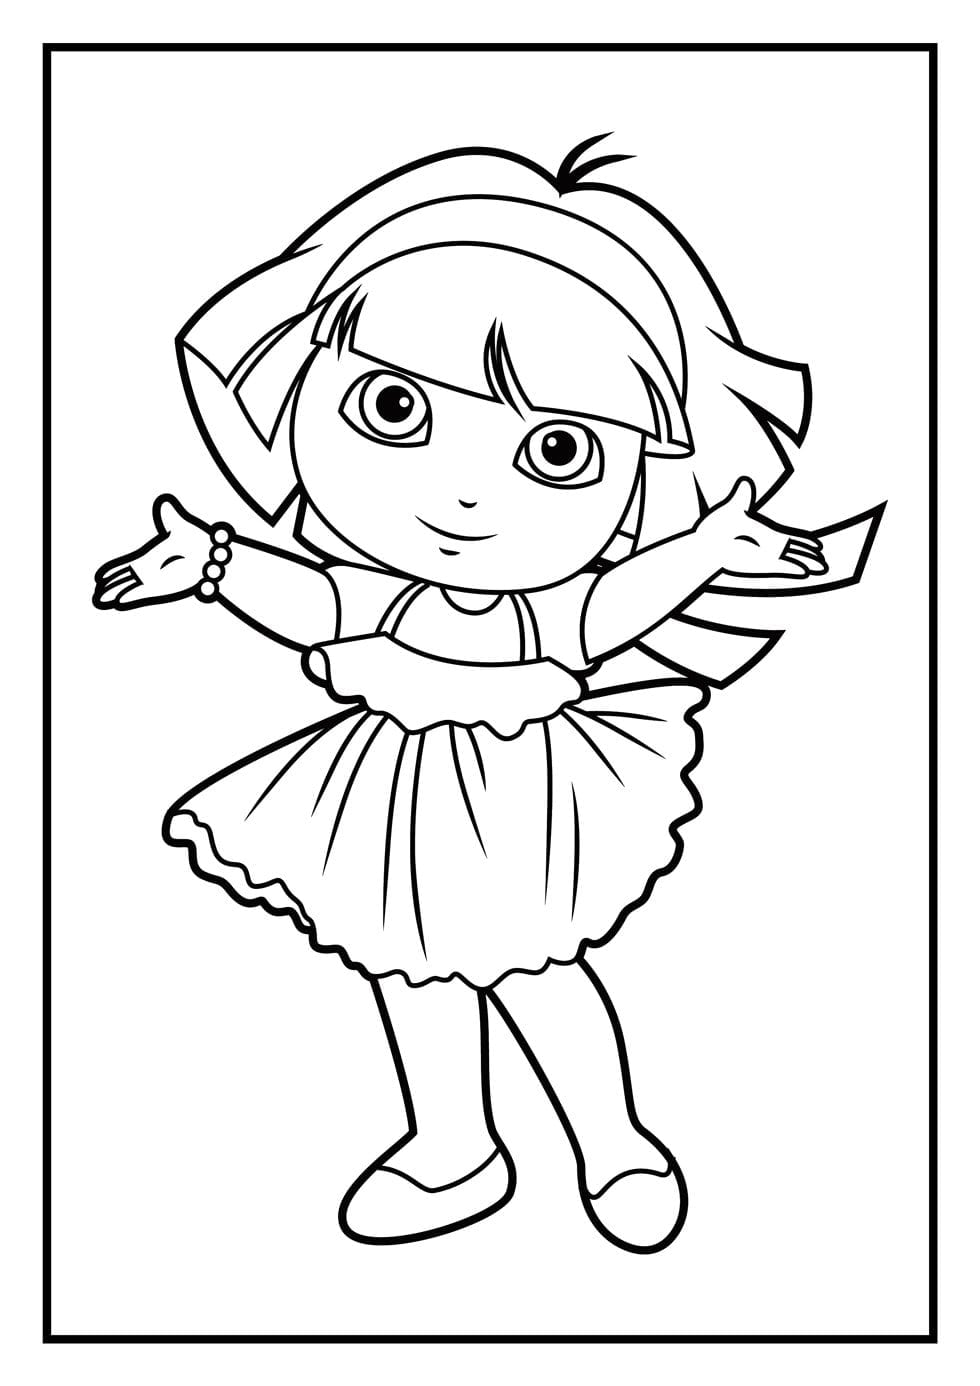 Dora Coloring Pages Diego Coloring Pages Dora Coloring Pages